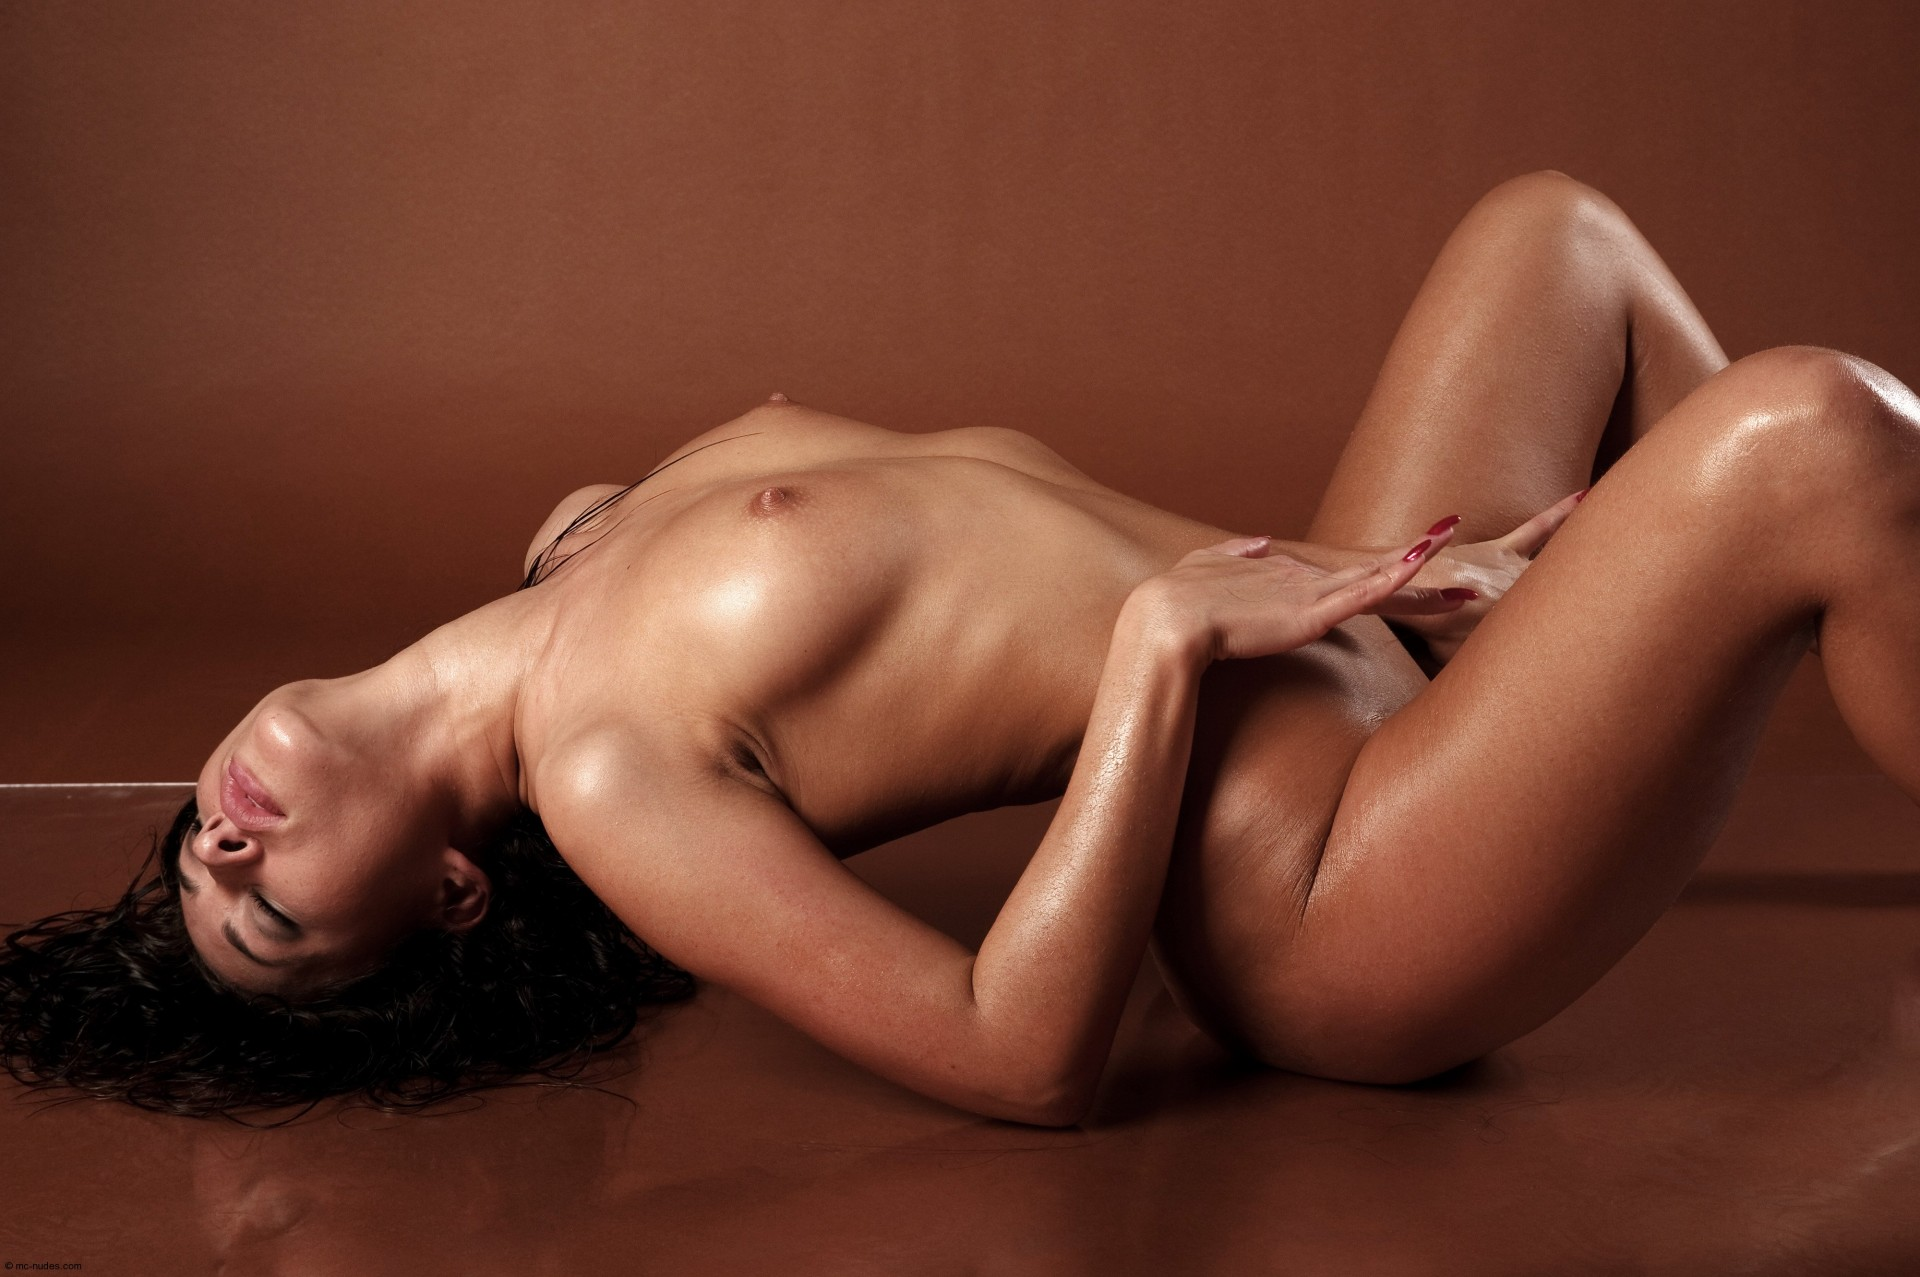 orgasmic-nude-pictures-of-women